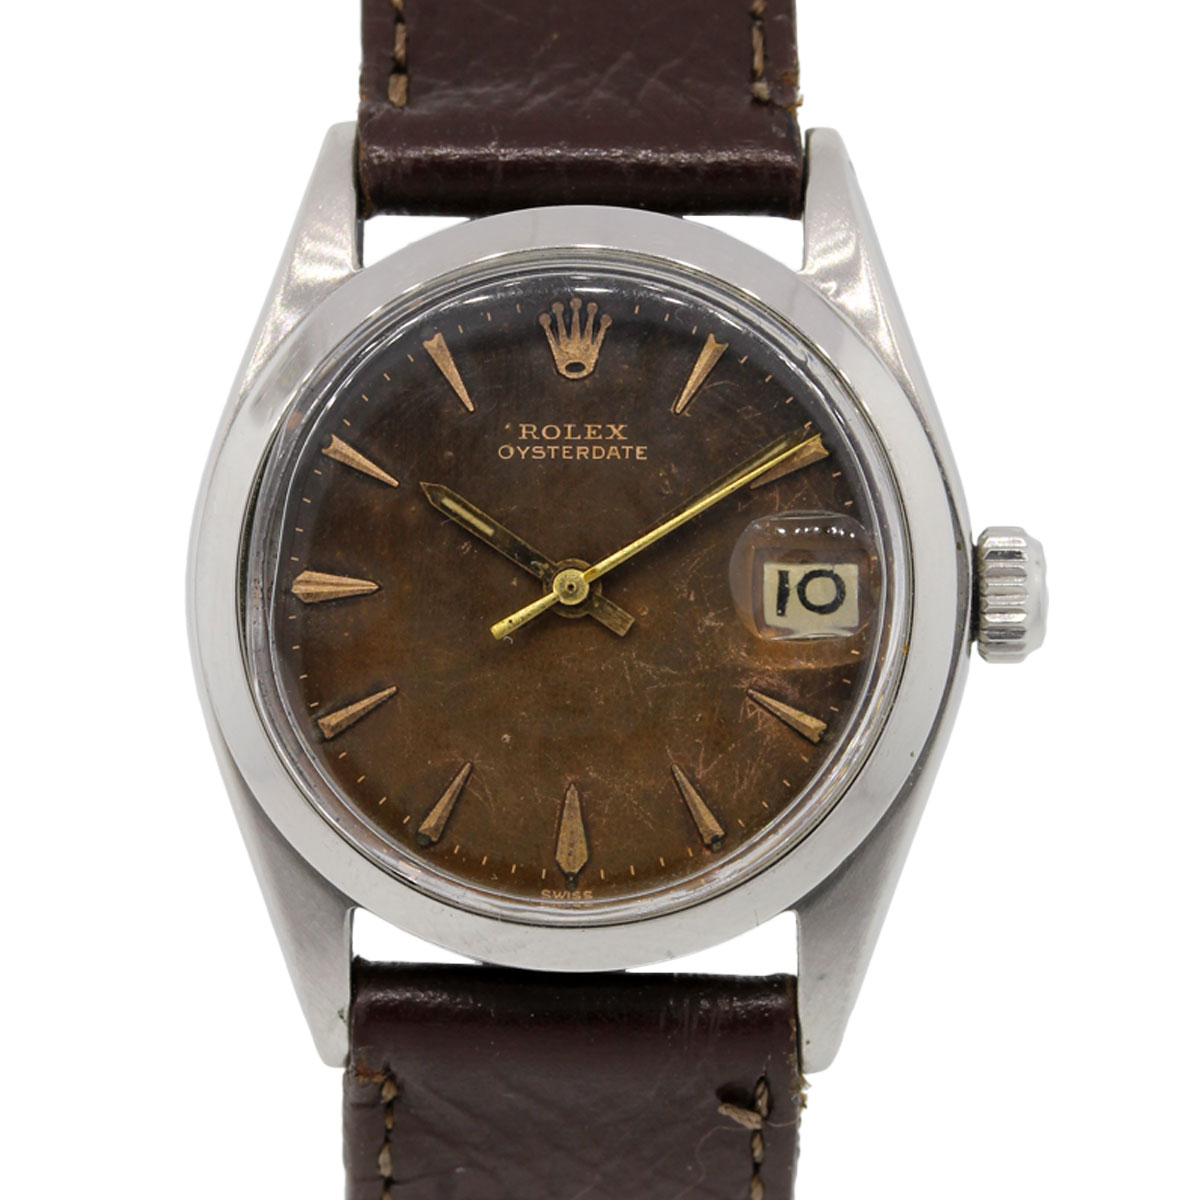 Rolex 6466 Oysterdate Brown Tropical Dial Vintage Watch